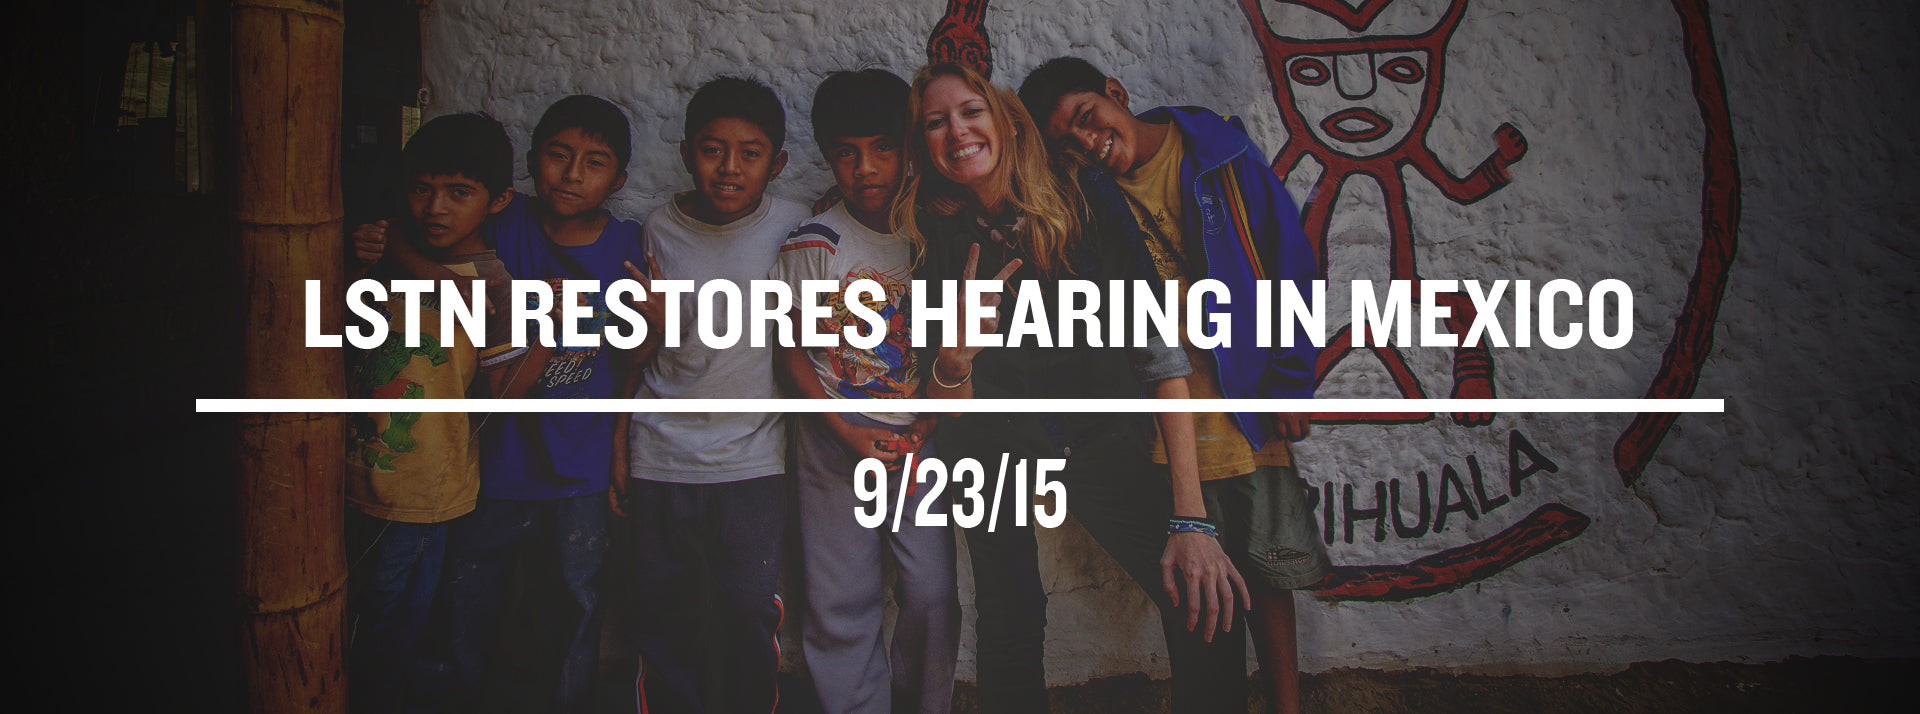 LSTN Sound head to Mexico with Starkey Hearing Foundation